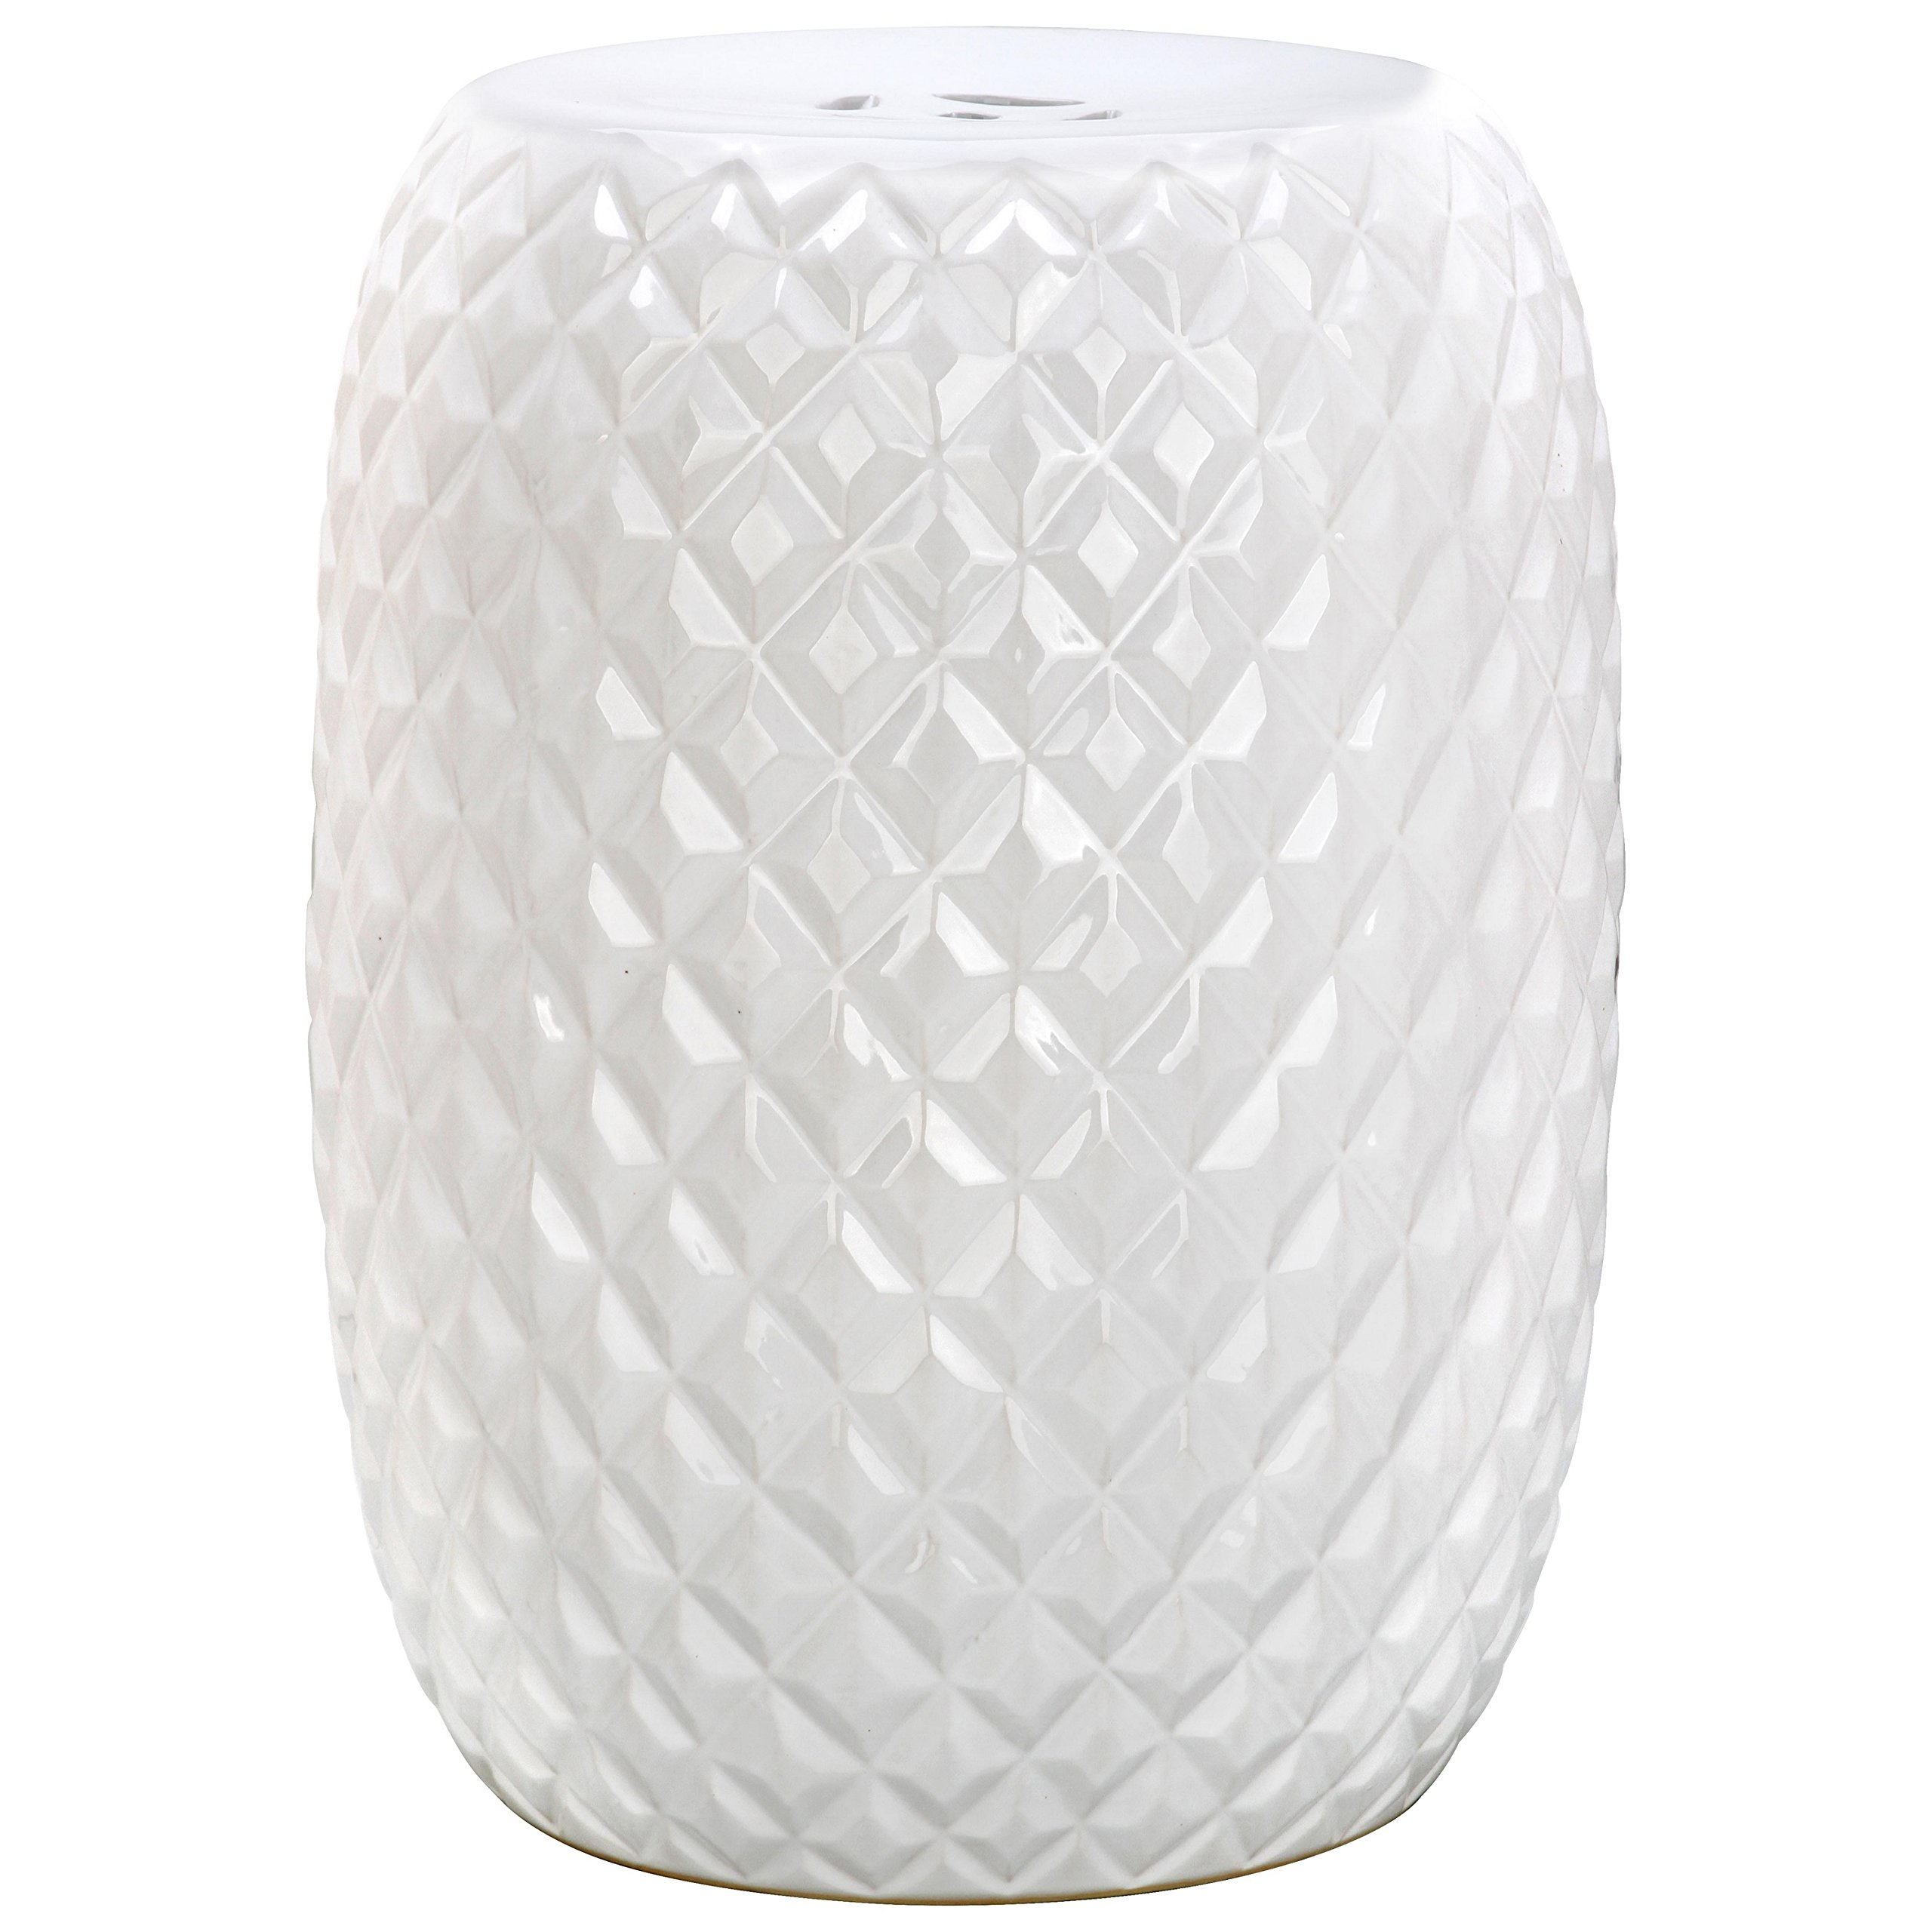 Safavieh Castle Gardens Collection Calla White Glazed Ceramic Garden Stool